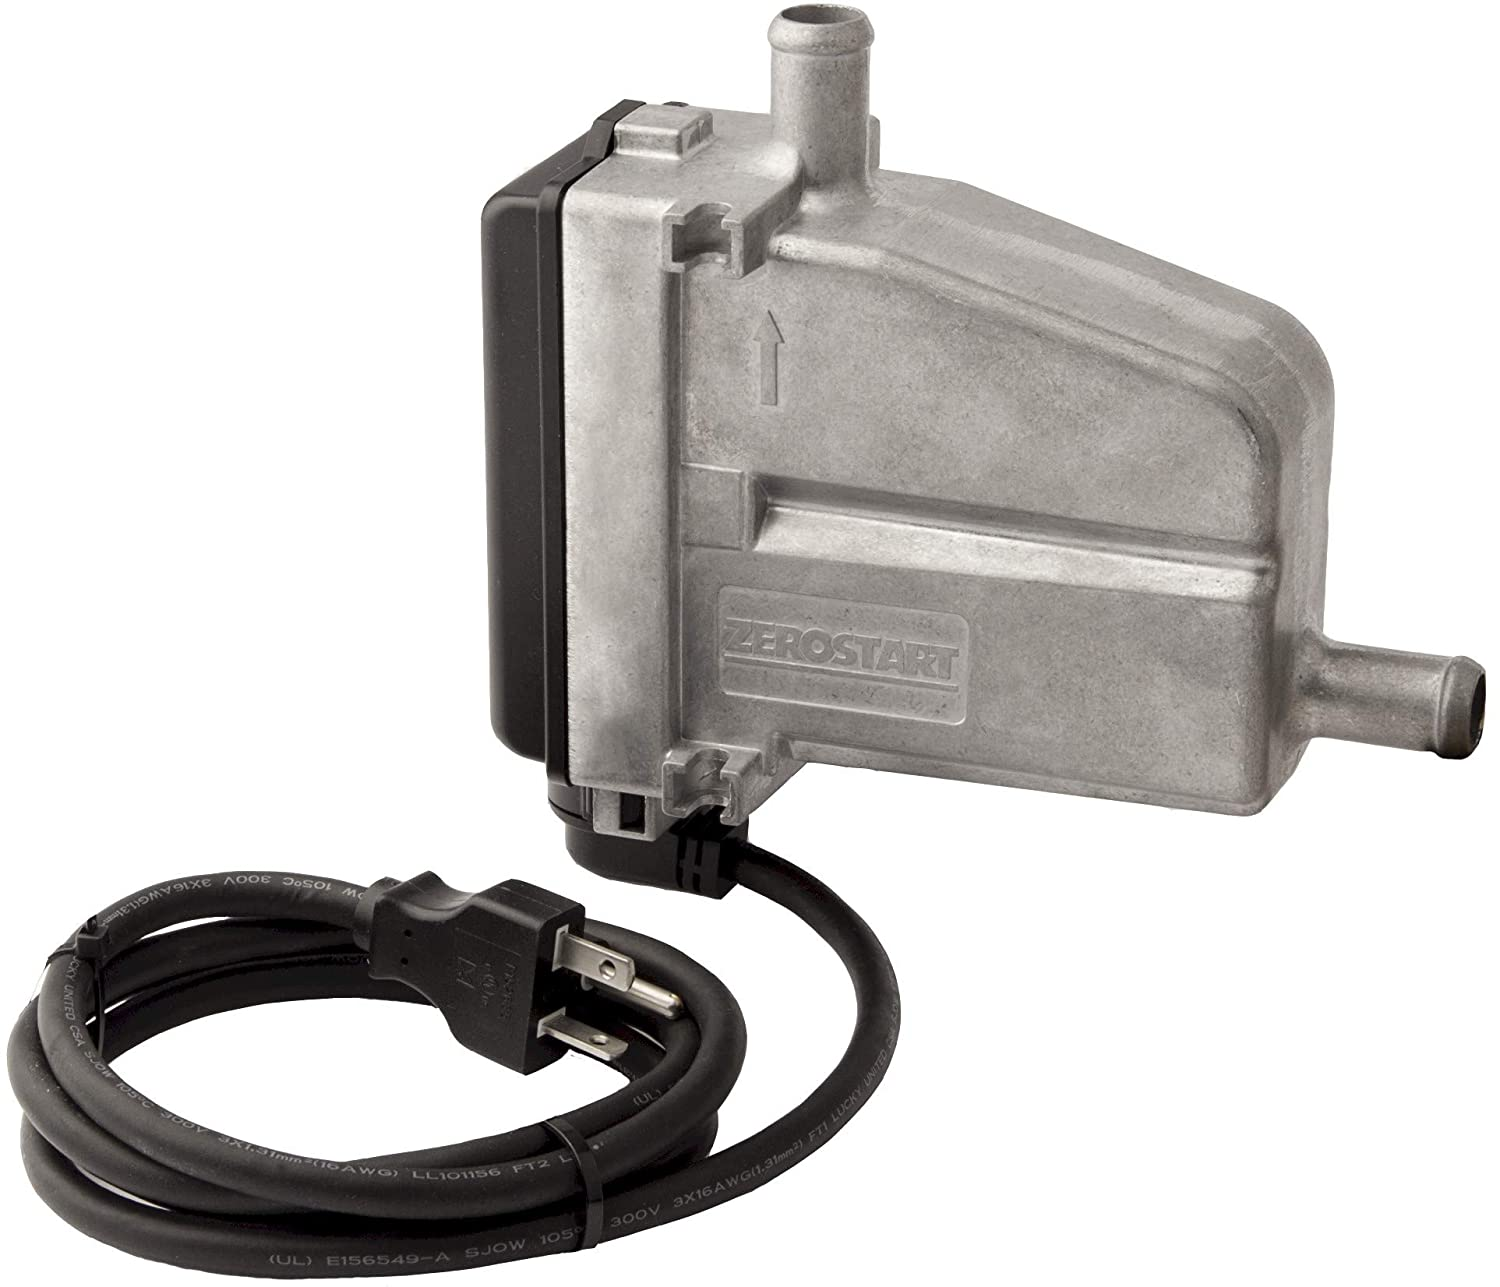 Zerostart 3309043 Circulation Tank Heater for Power Generation, Compressors, Agriculture, 5/8' Diameter Inlet/Outlet | CSA Approved | 120 Volts | 1500 Watts 5/8 Diameter Inlet/Outlet | CSA Approved | 120 Volts | 1500 Watts